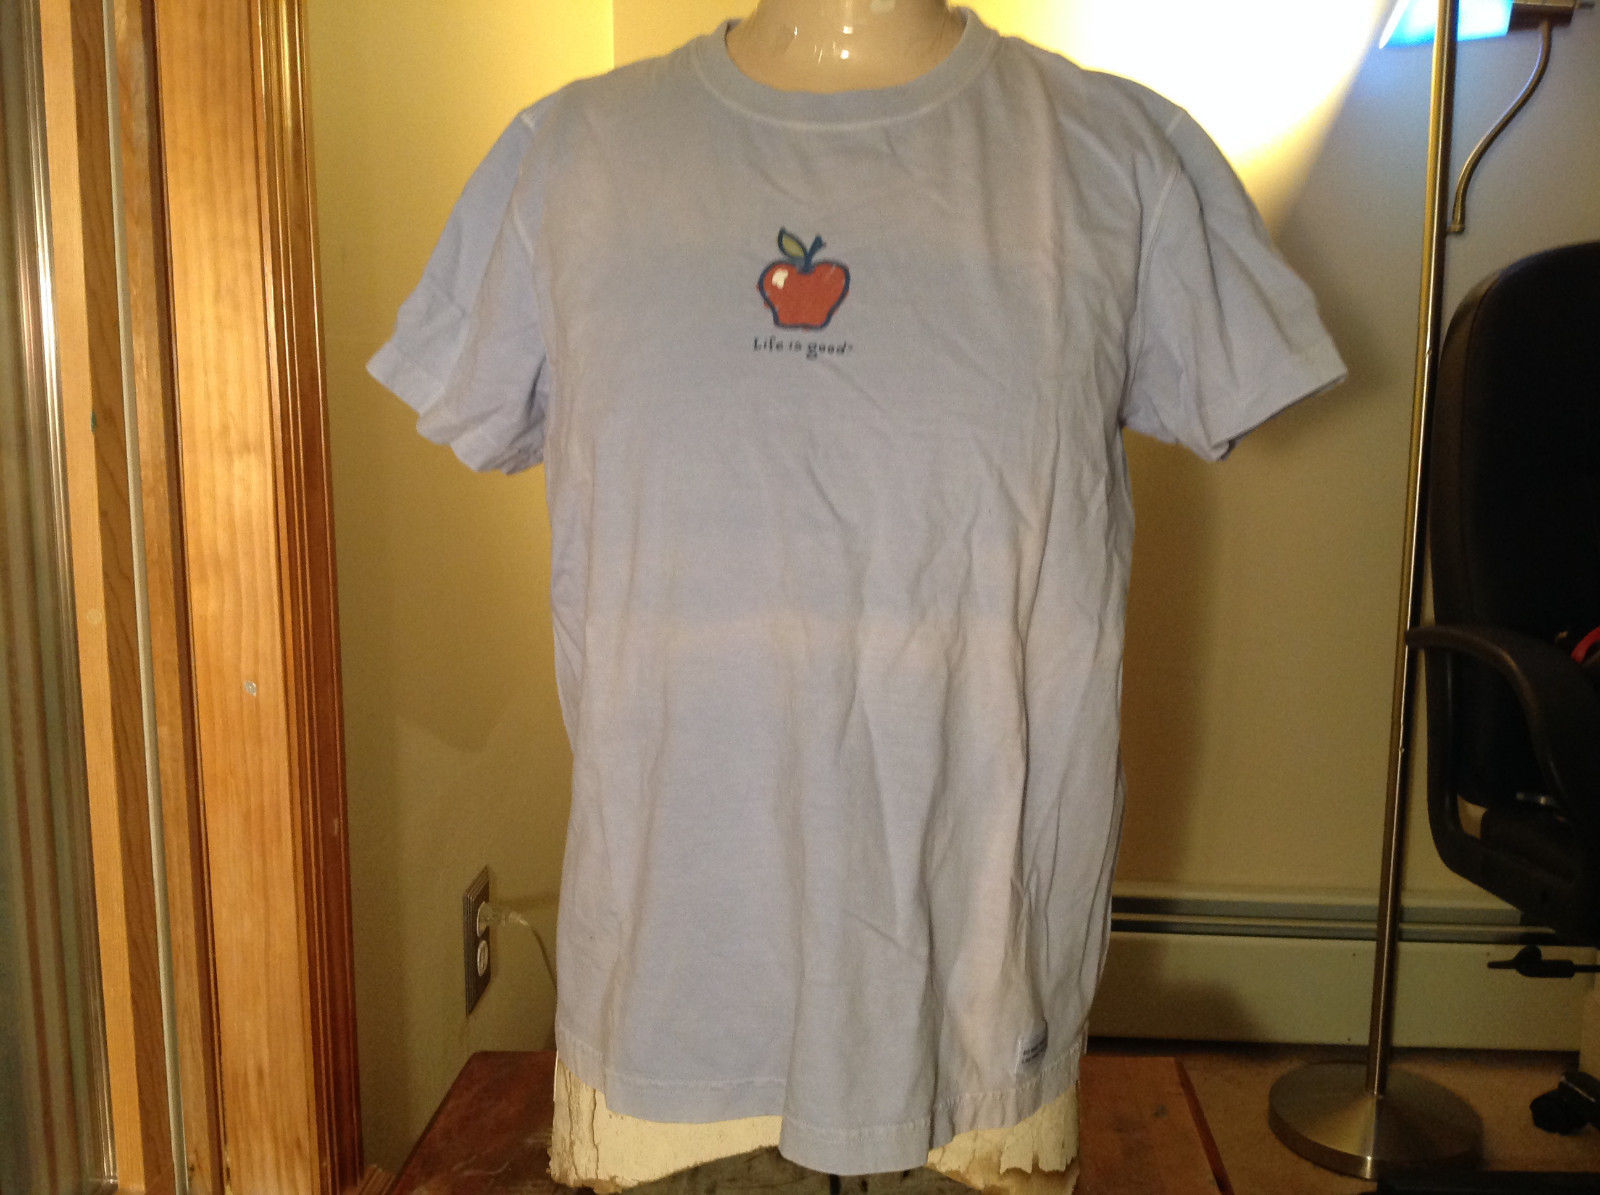 Life is Good Light Blue Life is Good Apple Short Sleeve Shirt Size Medium